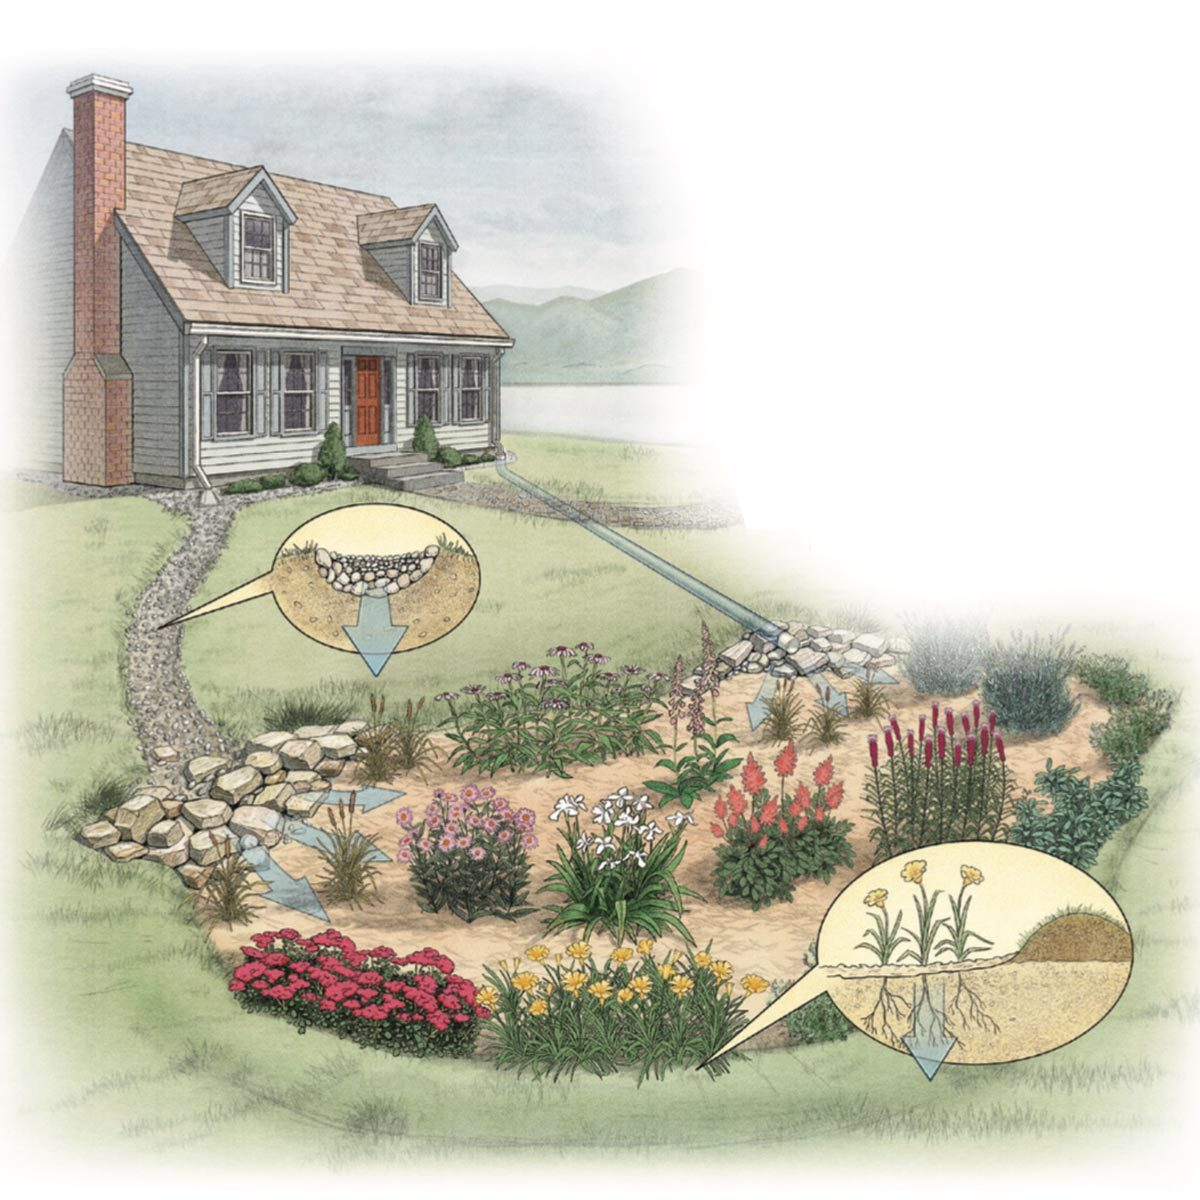 Build a Rain Garden diagram